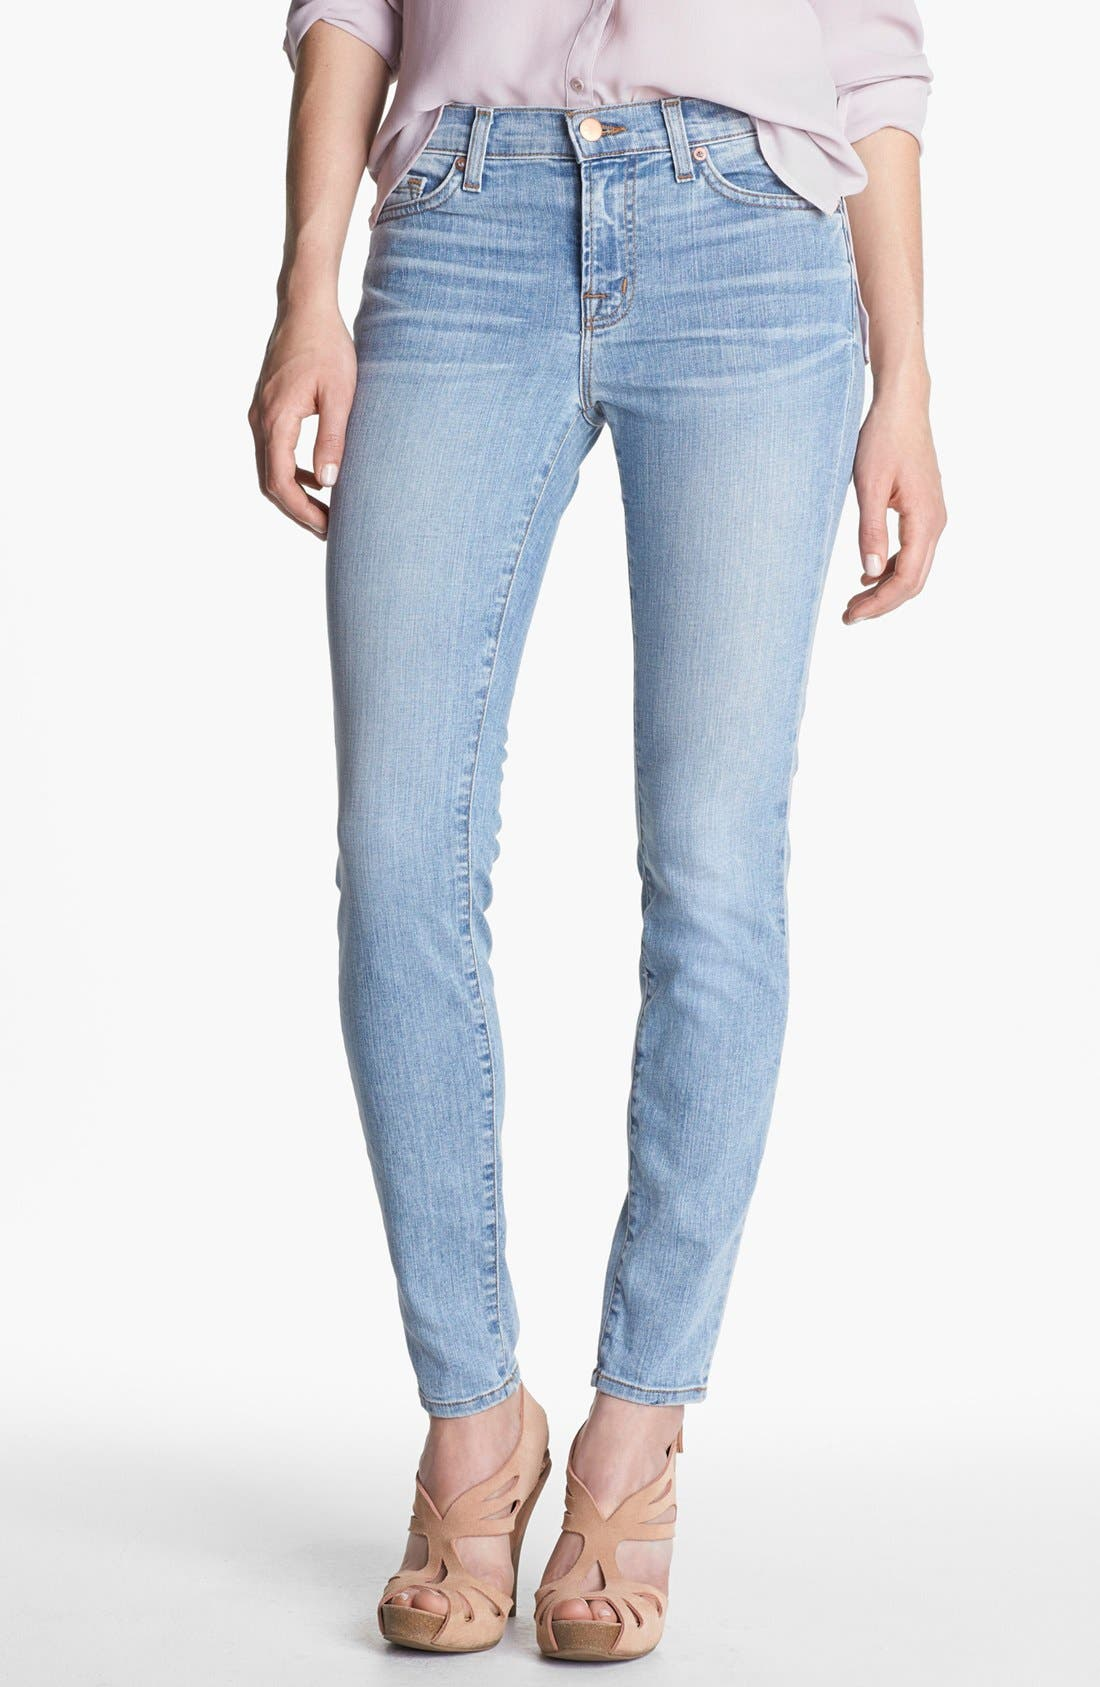 Alternate Image 1 Selected - J Brand '811' Mid-Rise Skinny Jeans (Orion)